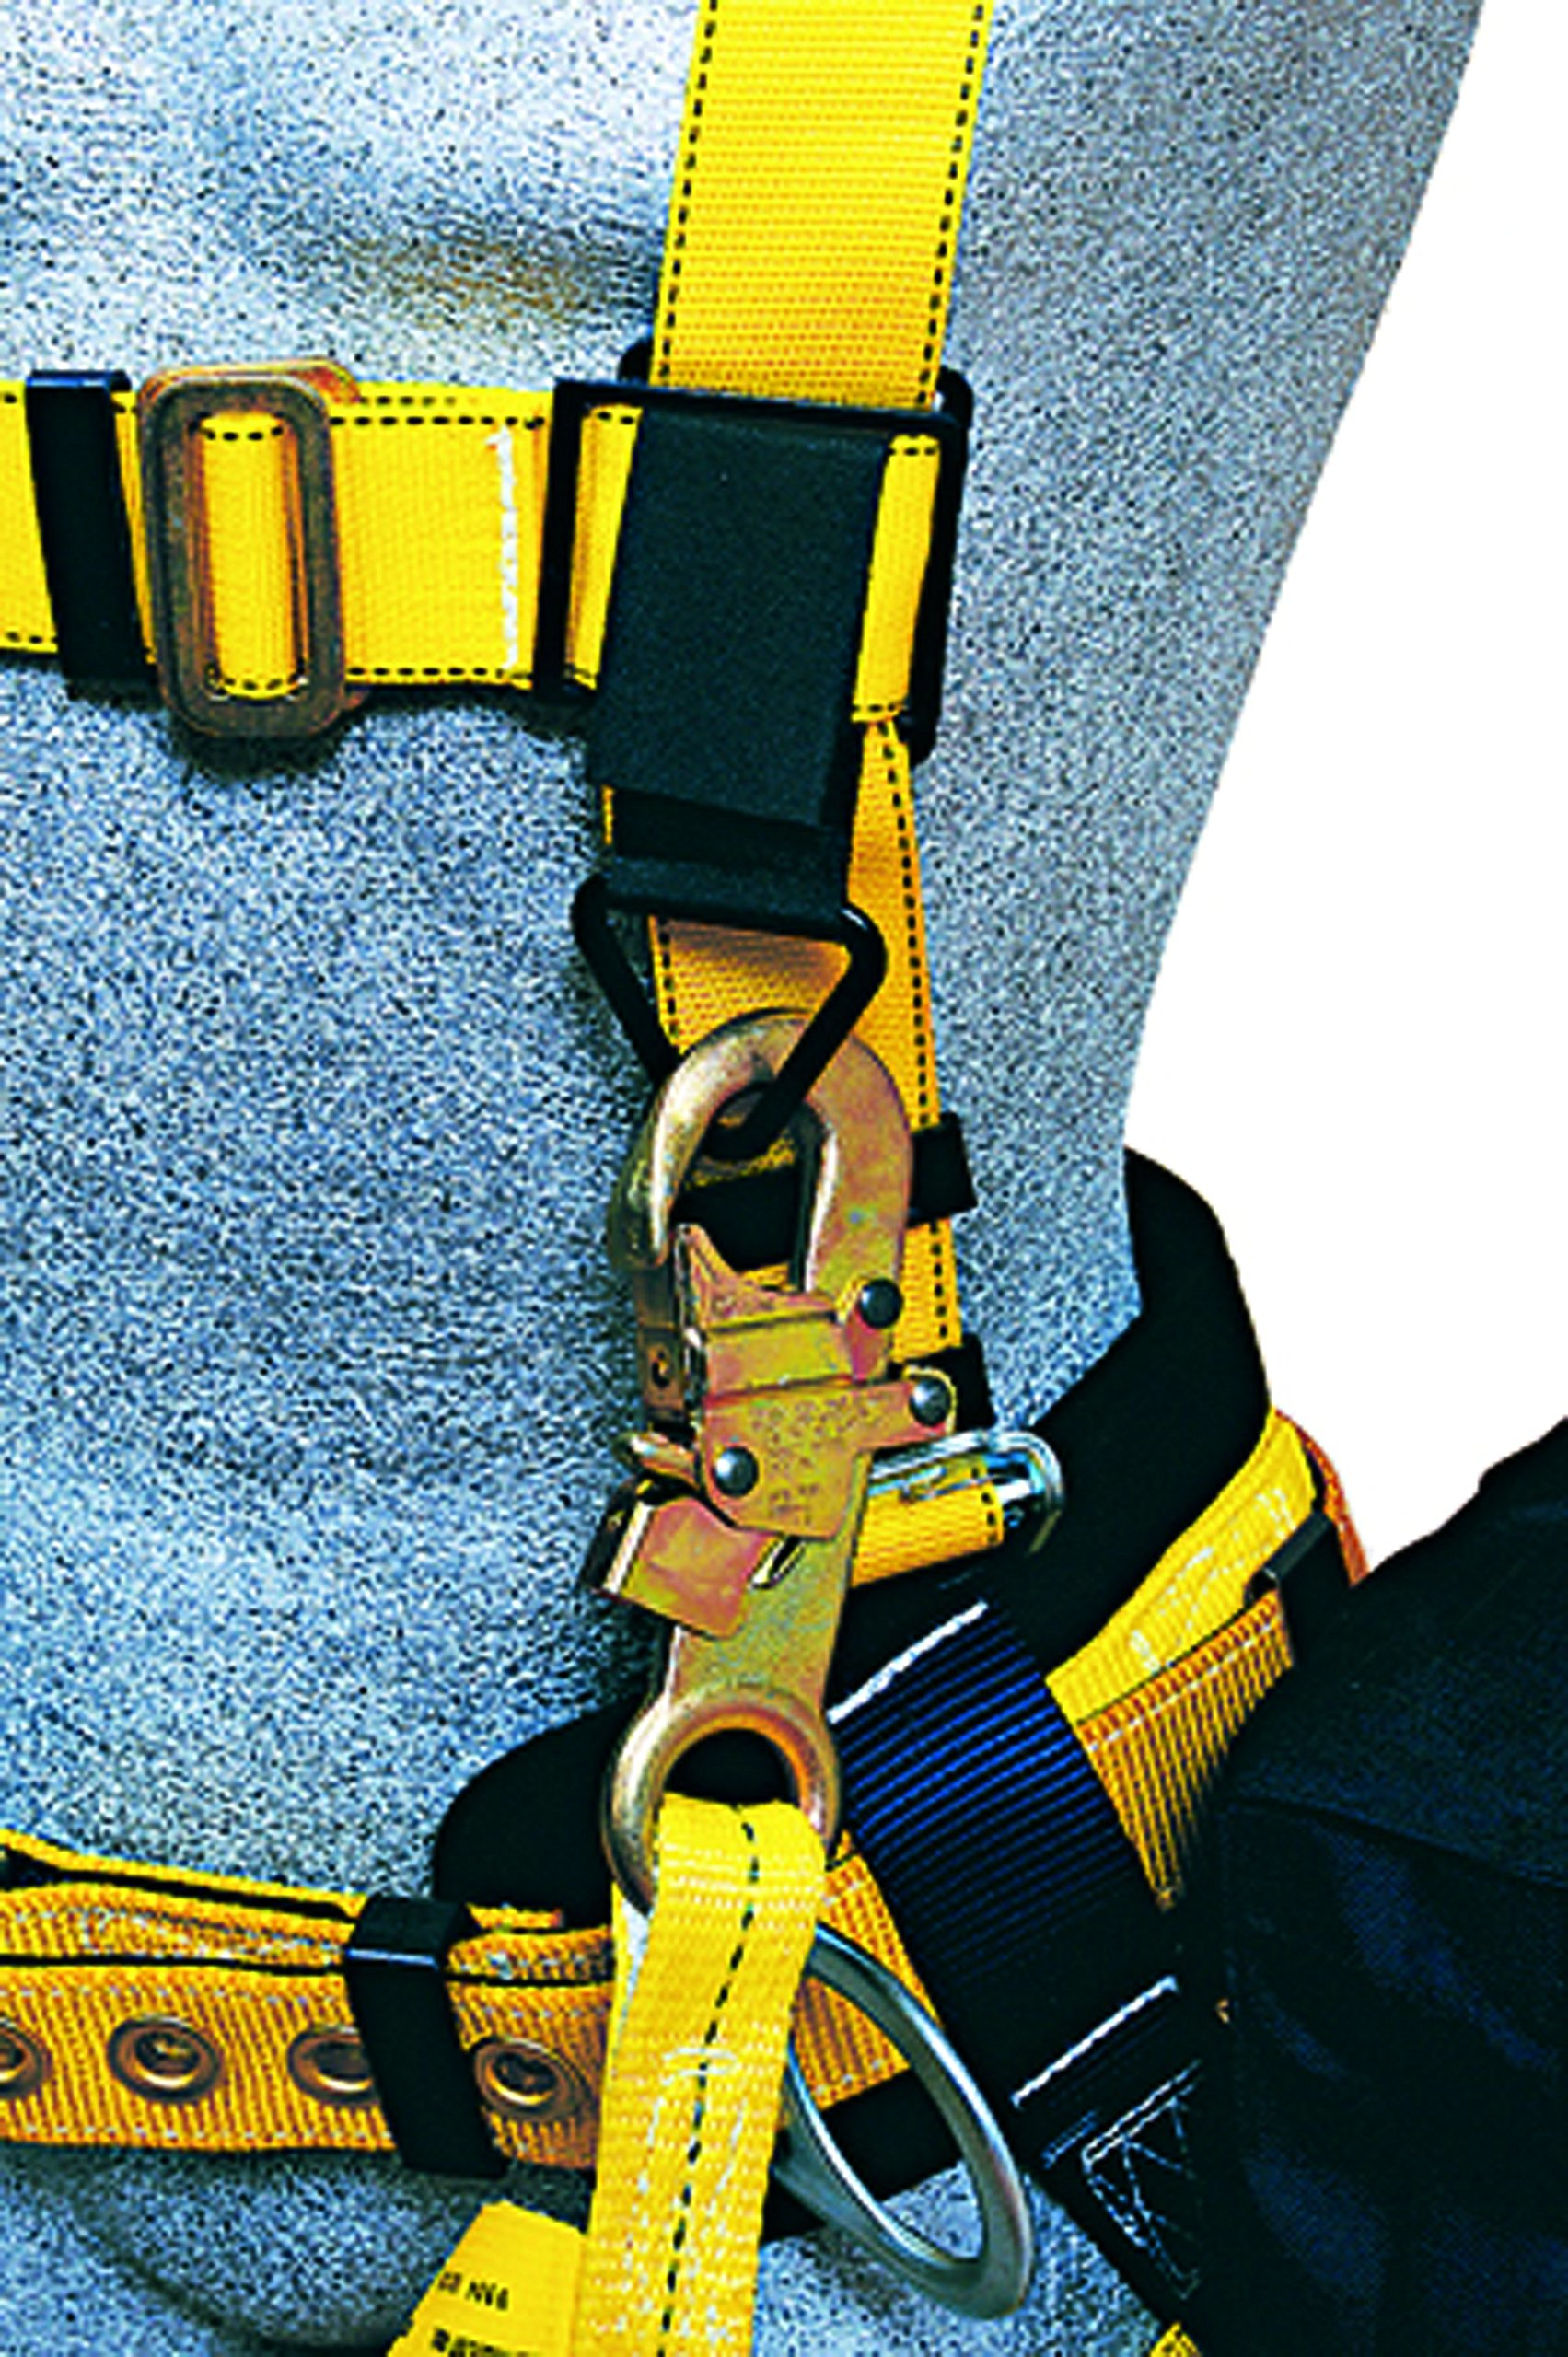 3M DBI-SALA Delta 1101654 Construction Harness, Back/Side D-Rings, Belt w/Sewn-In Back & Shoulder Pads, Tongue Buckle Leg Straps, Medium, Navy/Yellow by 3M Fall Protection Business (Image #9)